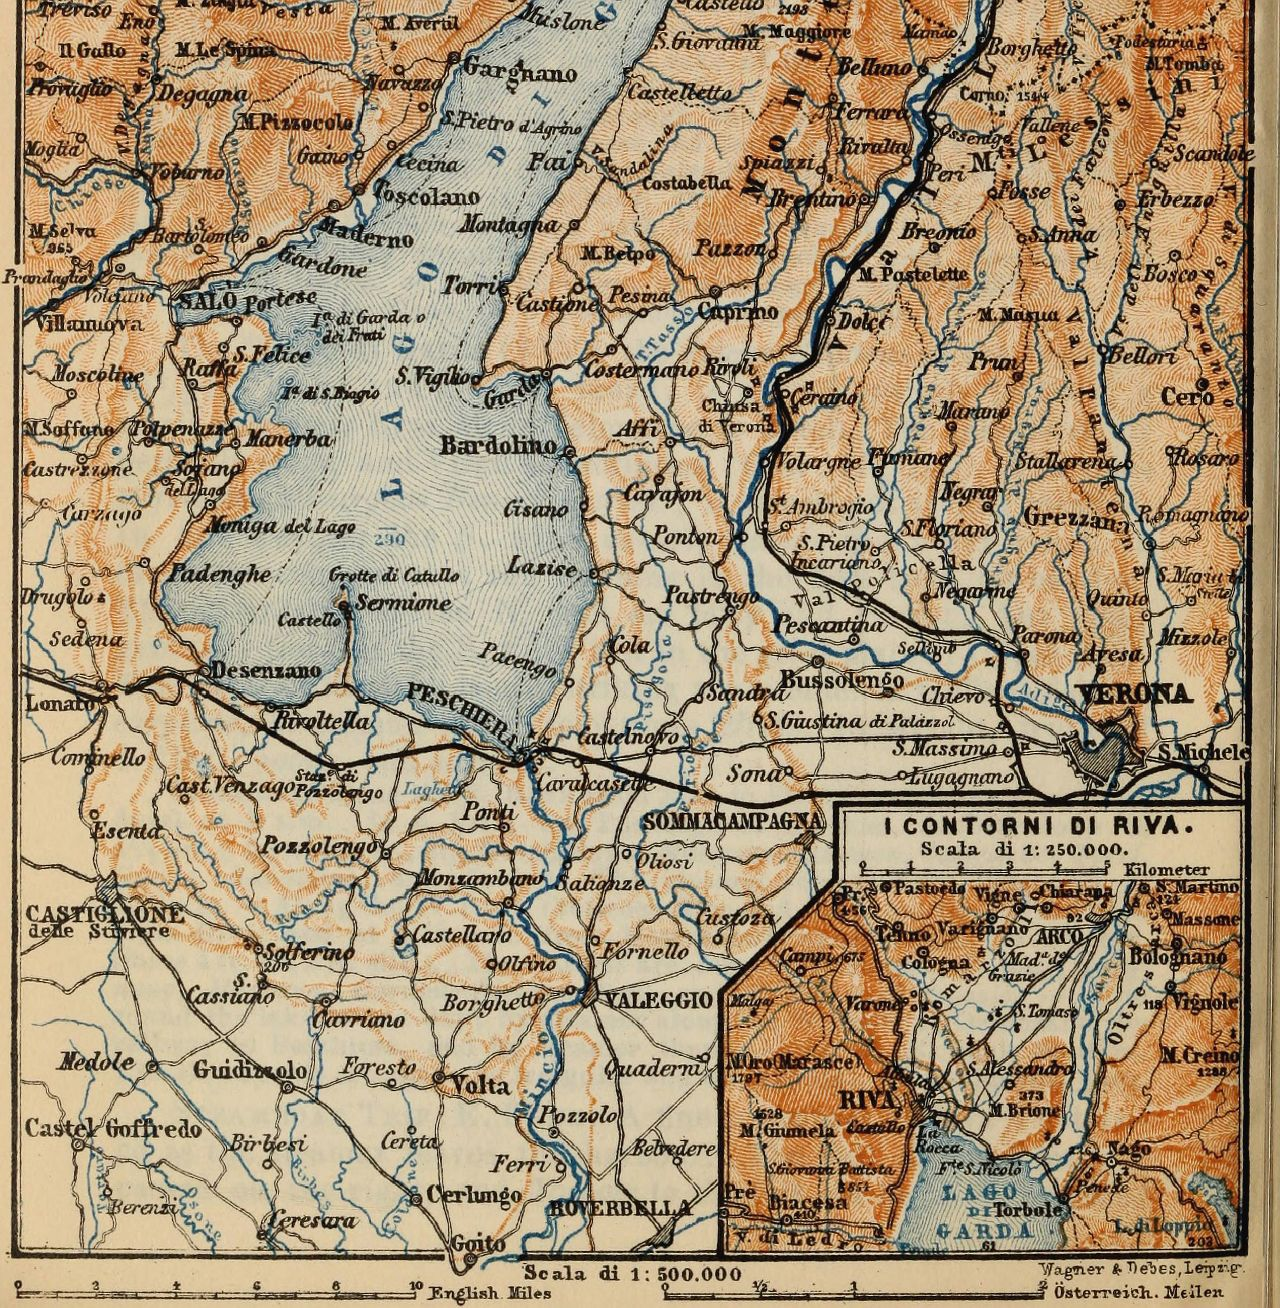 the eastern alps-map-book-internet archive-Image from page 406 of The eastern Alps including the Bavarian highlands, Tyrol, Salzkammergut, Sty 14596442900